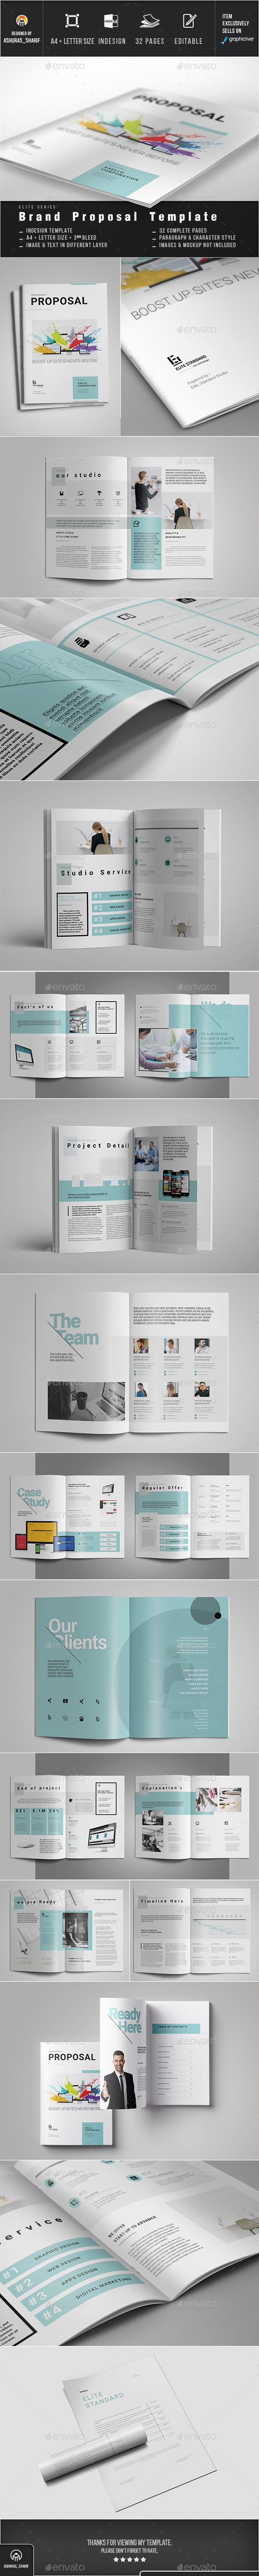 Proposal u2014 InDesign INDD brochure template u2022